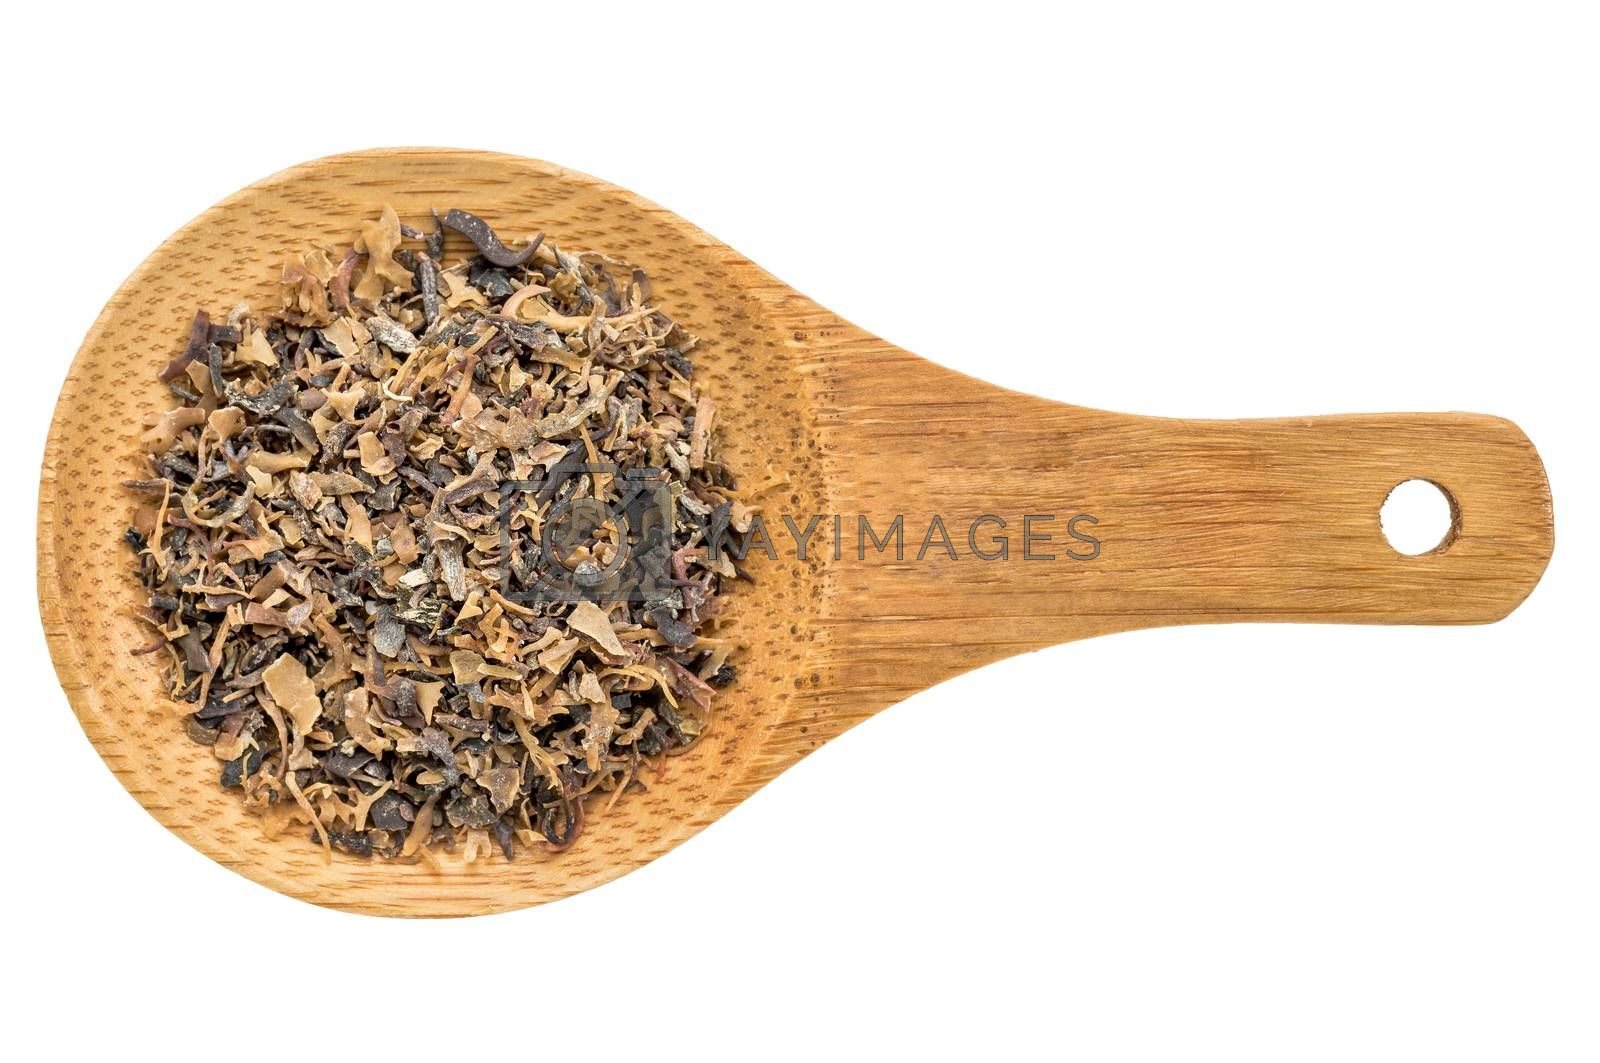 Irish moss seaweed - top view of a wooden spoon isolated on white